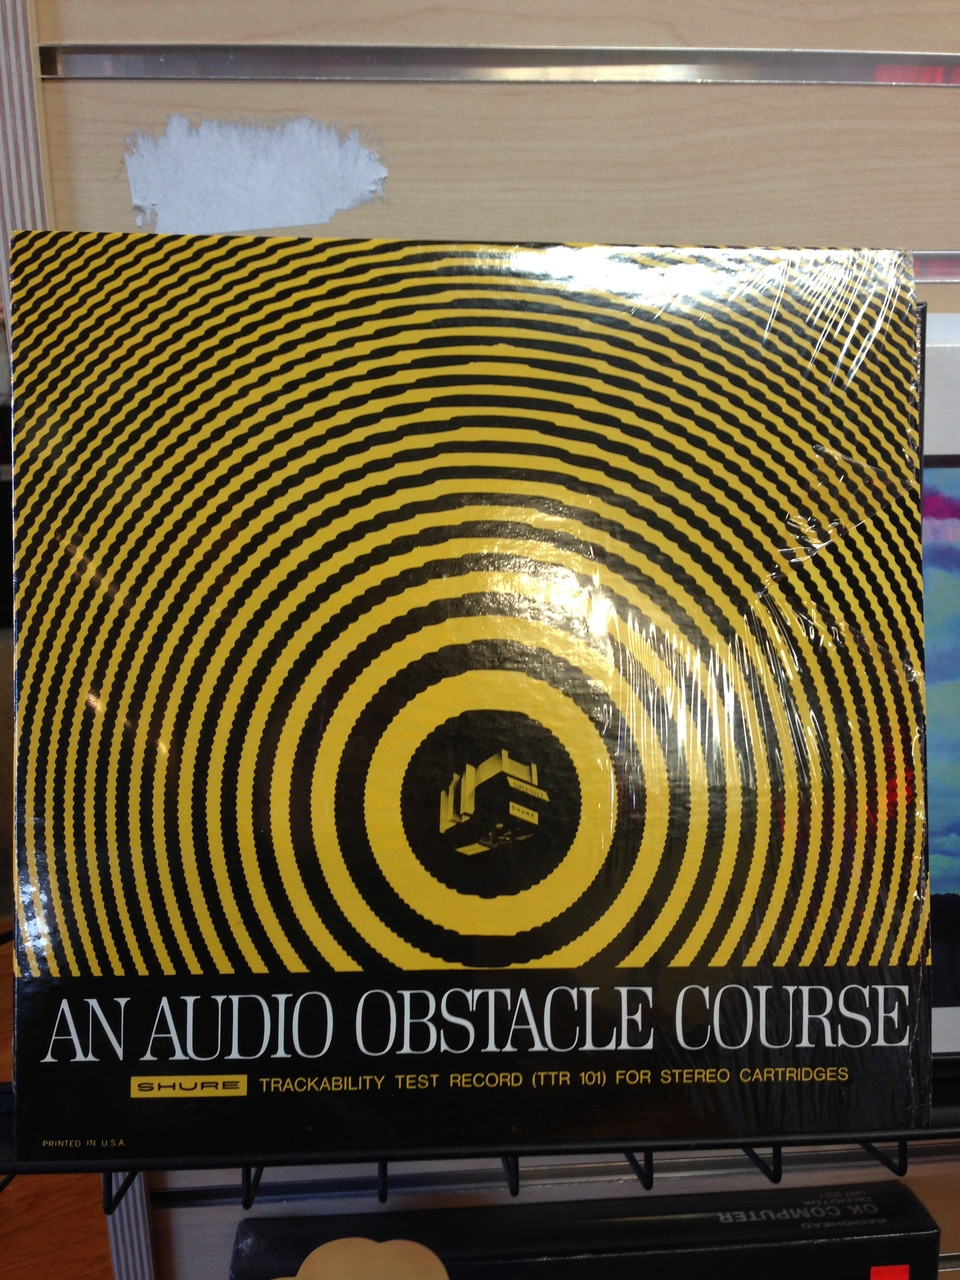 Audio Obstacle Course - Shure Test Record  LP